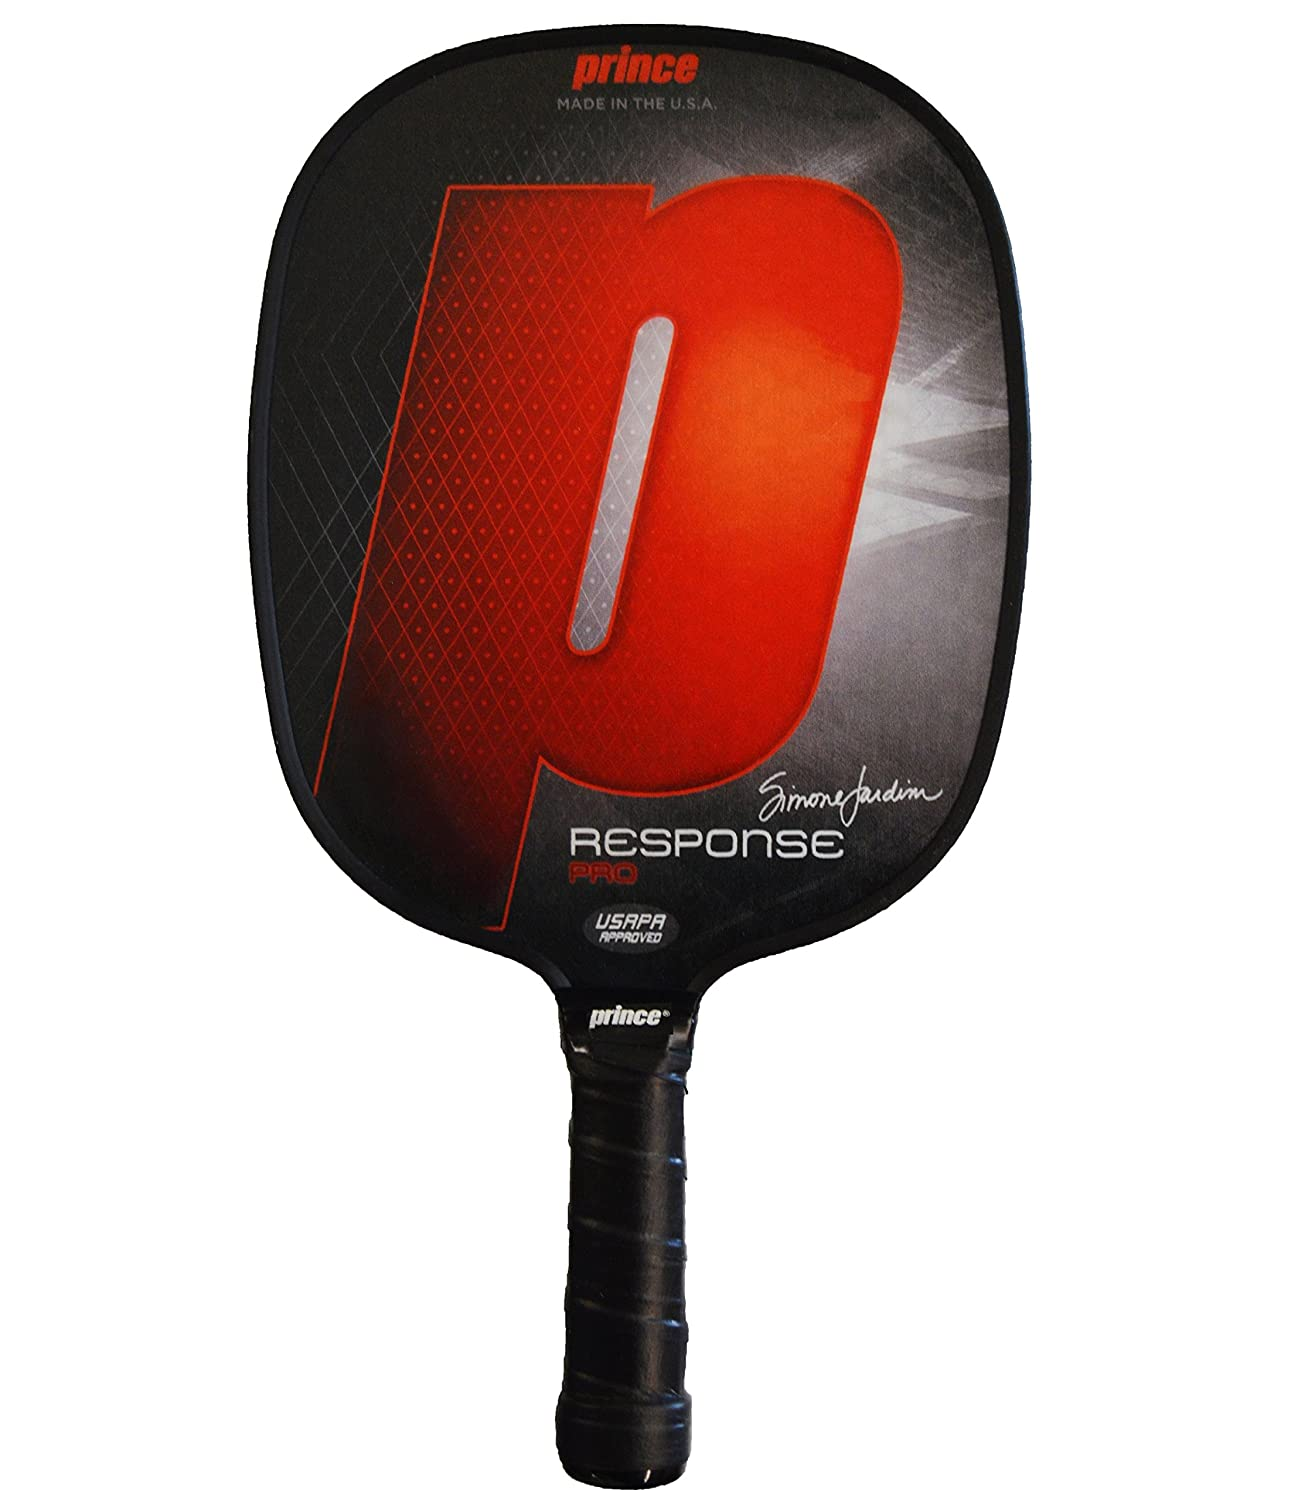 Prince response pro Pickleballパドル | B07D97Z9LR Small Standard Weight Weight|Red | Small Grip Red | Small Grip Standard Weight, ラリーグラス:150a560b --- lembahbougenville.com